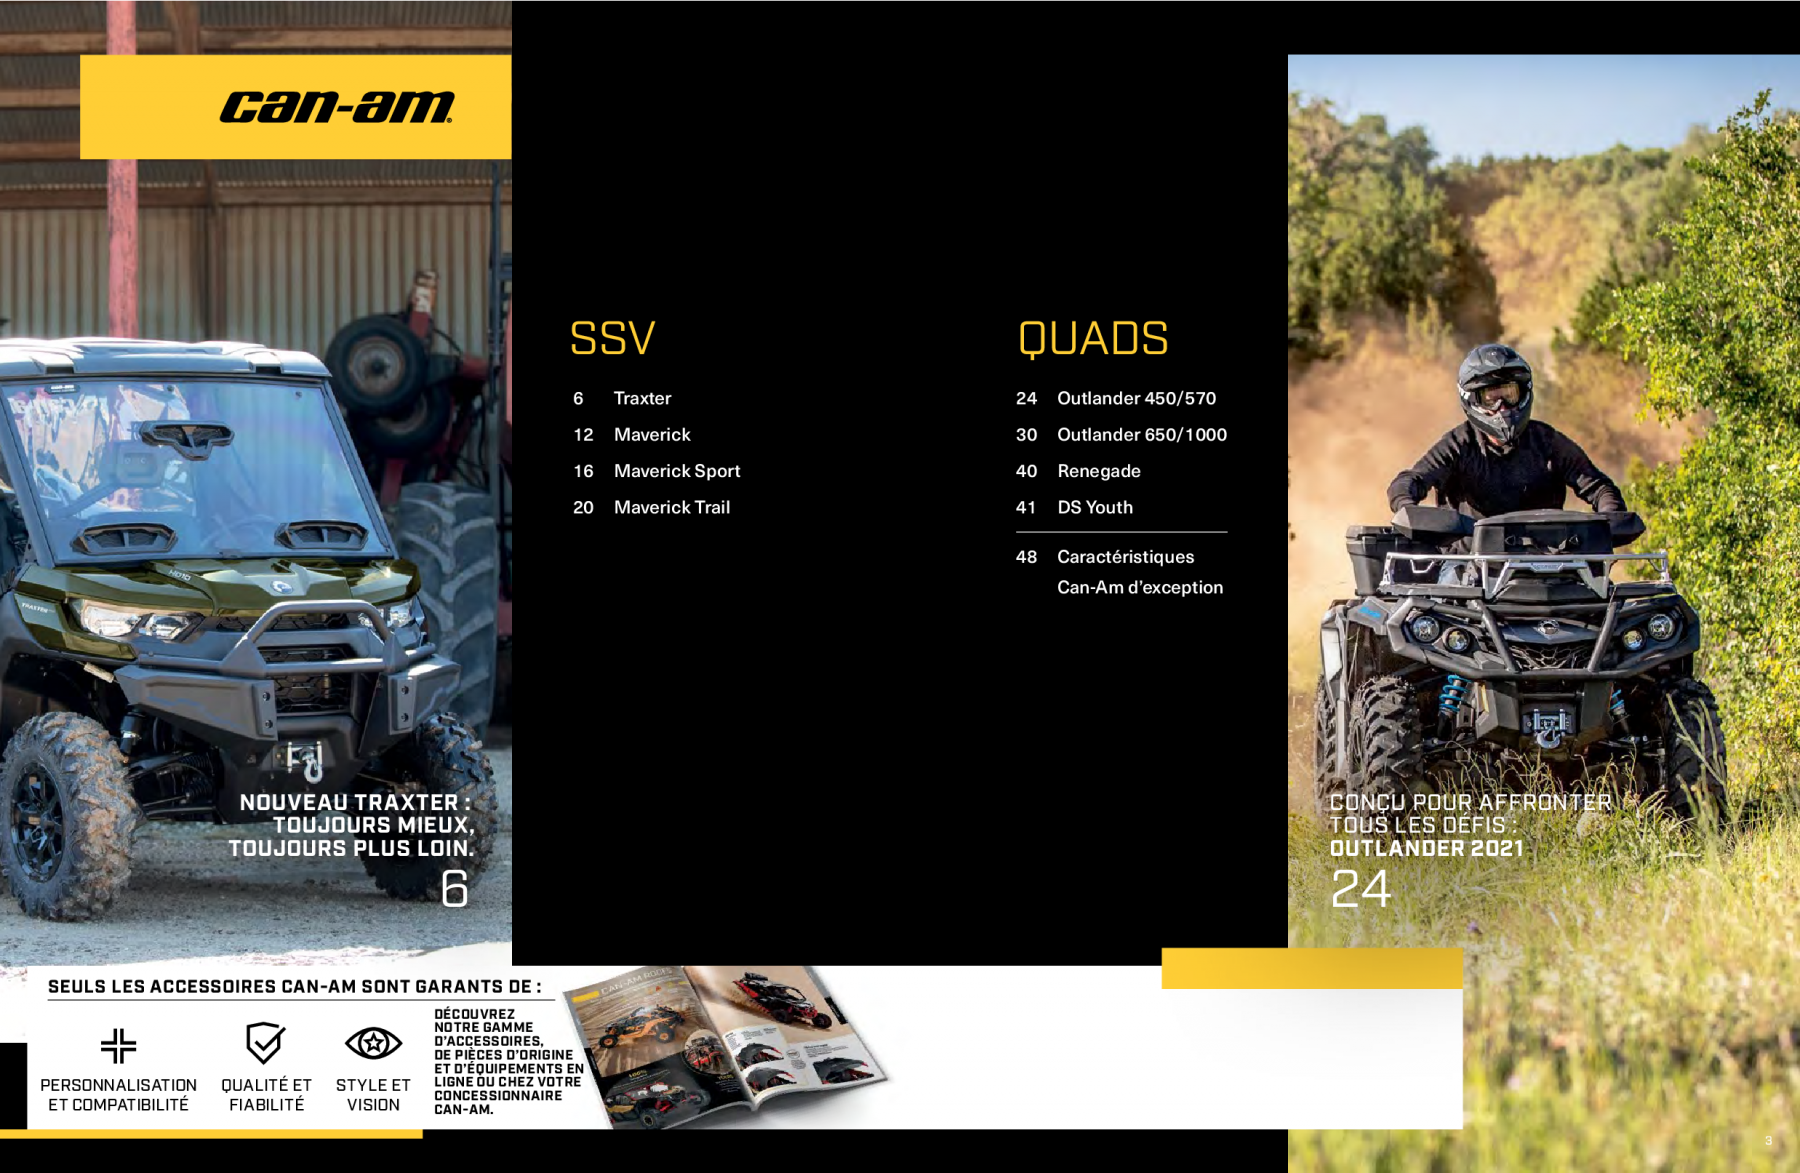 CAN-AM-Brochures-vehicules-gamme-2021-quad-ssv-_Motricity03